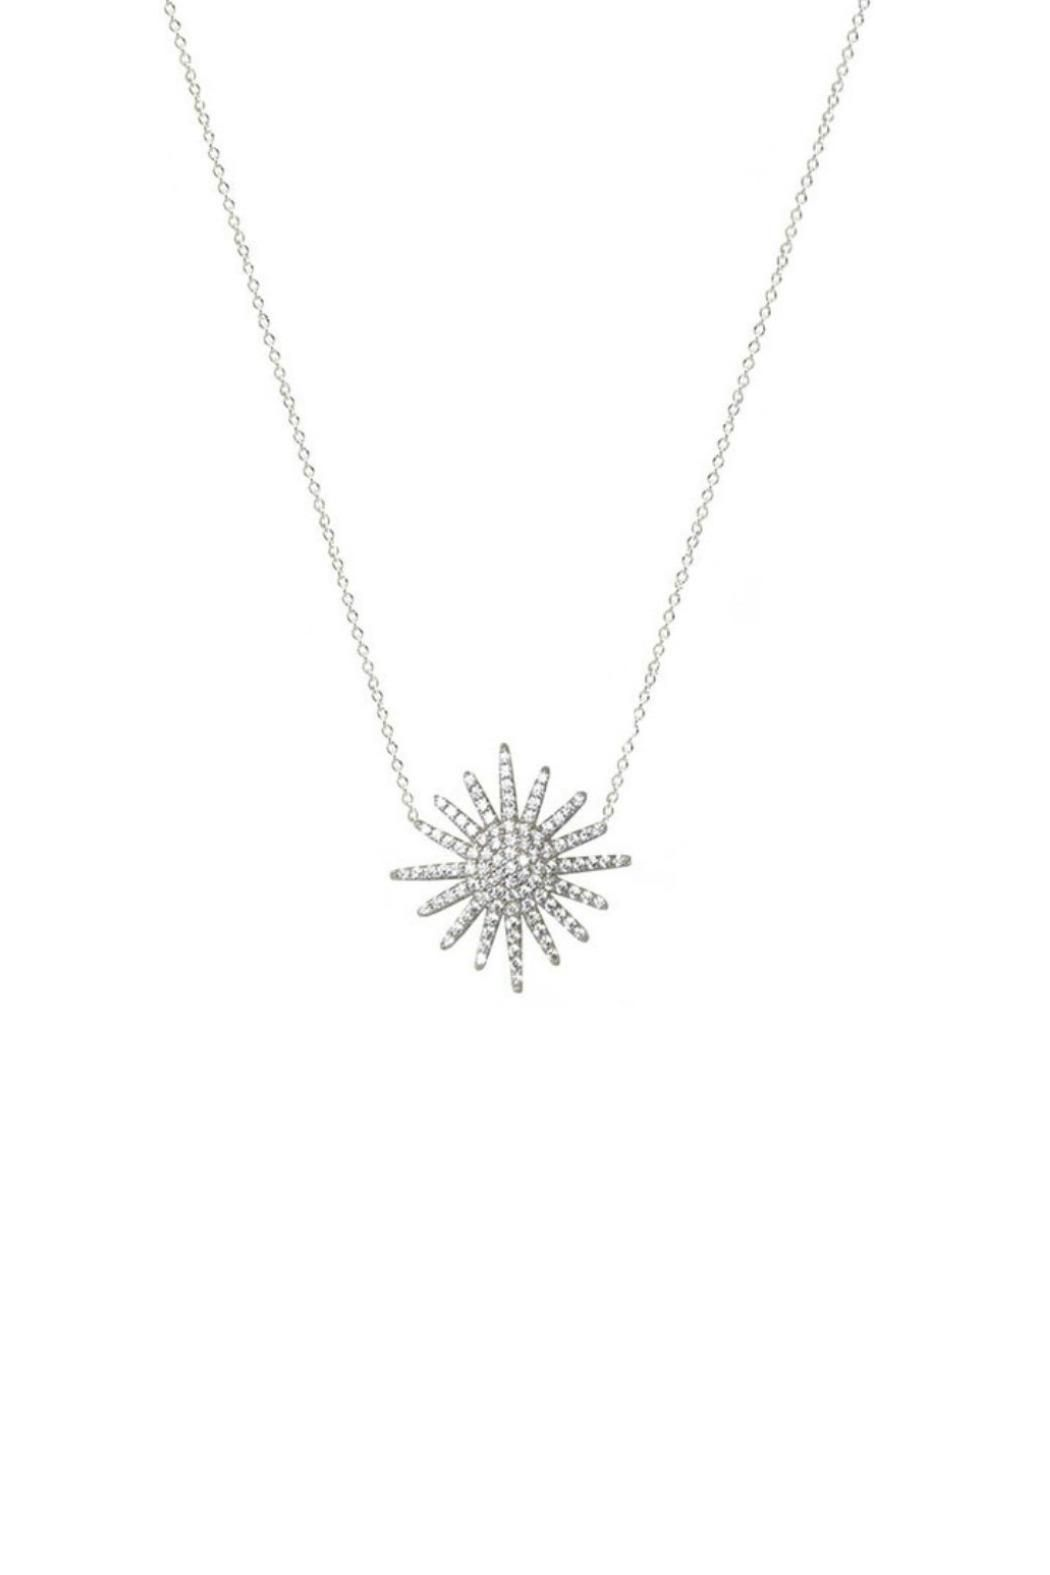 Jaimie nicole silver starburst necklace shoptiques boutique this necklace features a sterling silver starburst pendant with cubic zirconia and a sterling silver chain pendant measures approx 25mm necklace measures aloadofball Image collections